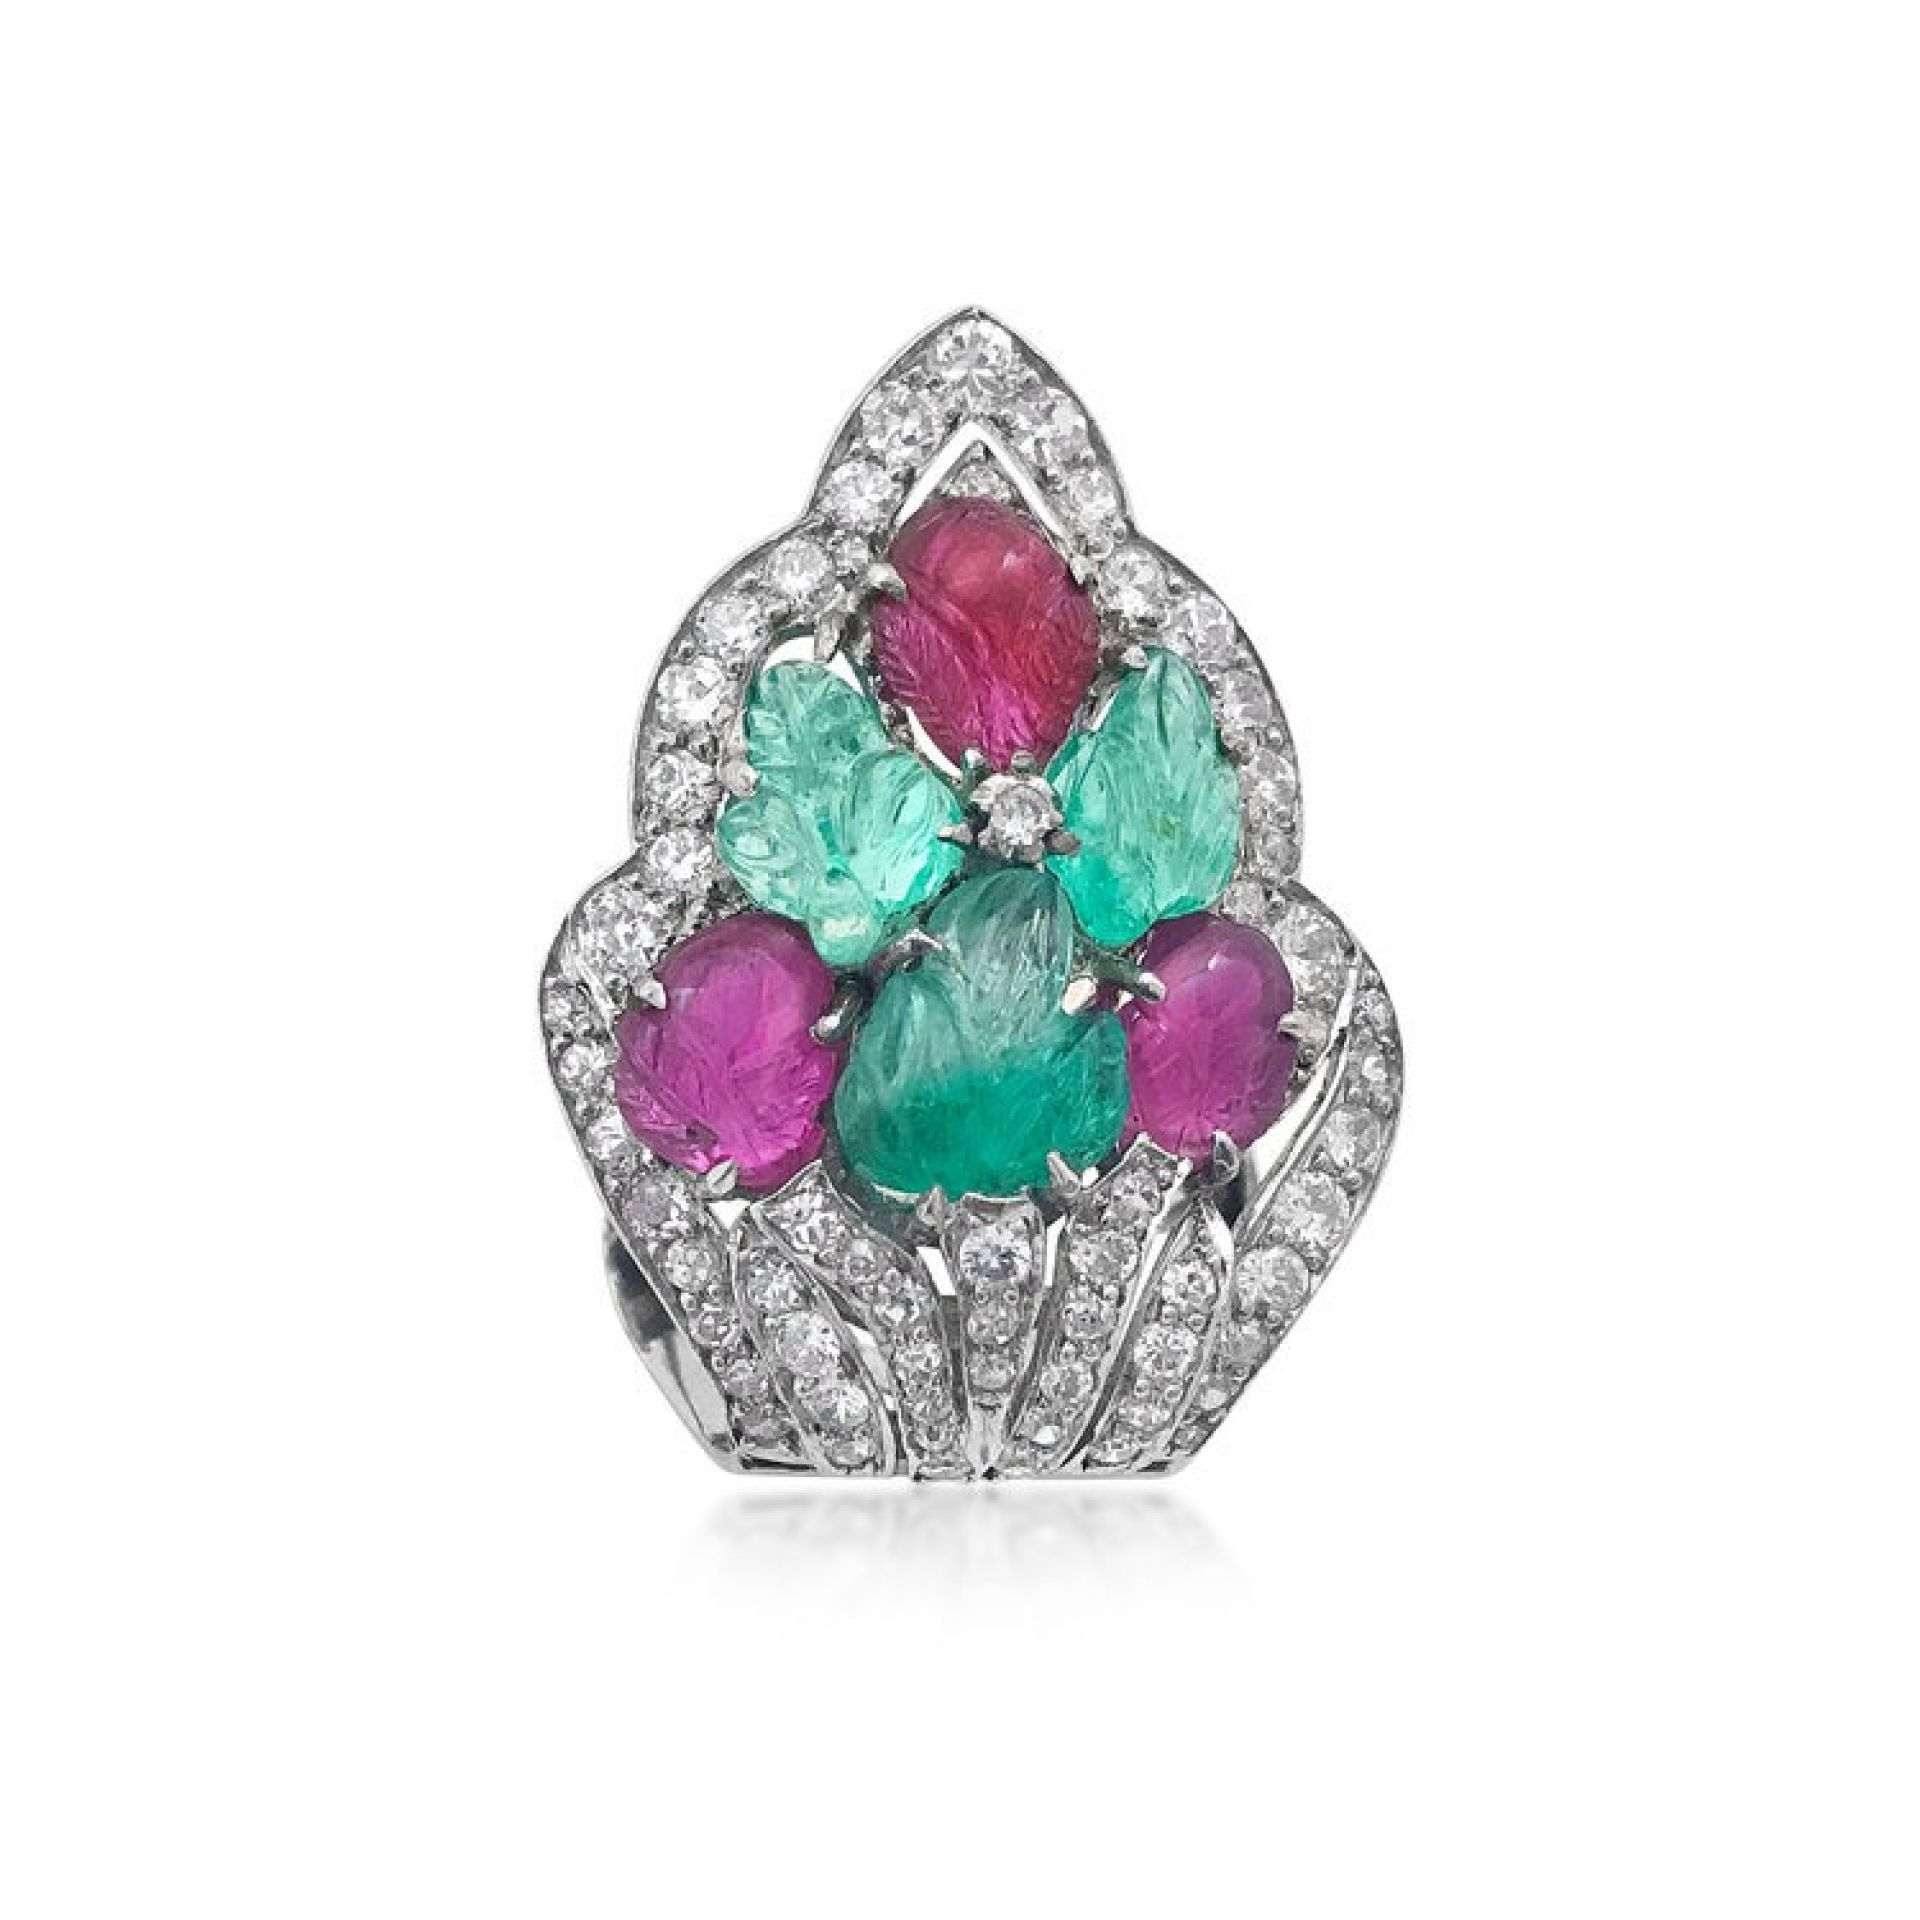 AN ART DECO TUTTI FRUTTI GEM-SET & DIAMOND CLIP BROOCH